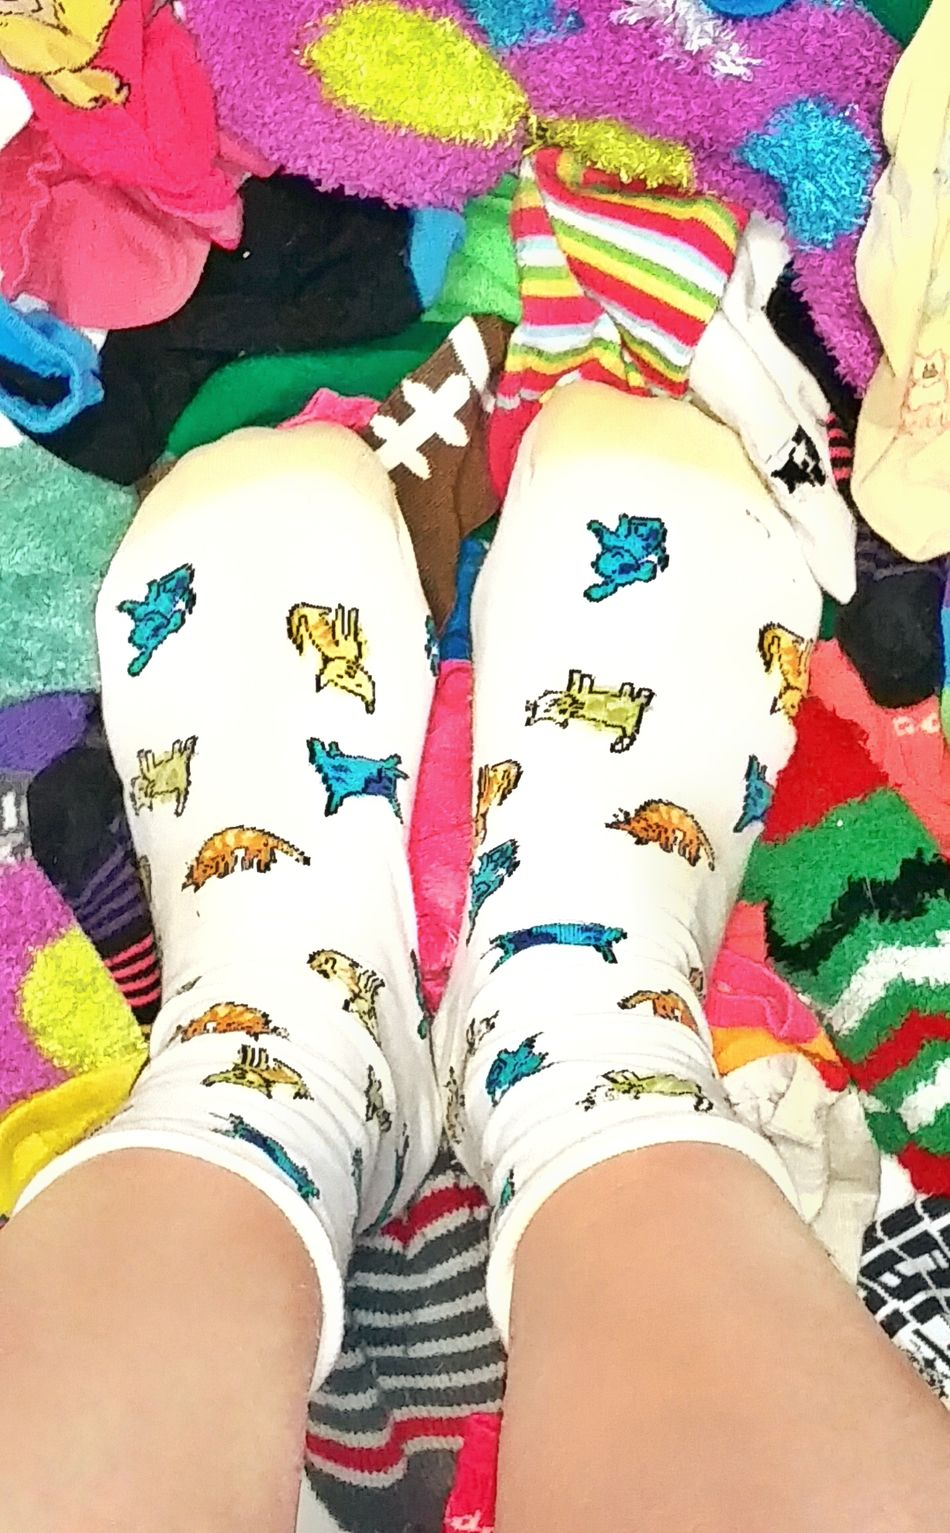 TK Maxx Socksie Socks Design Funny Socks Multi Colored Abundance Large Group Of Objects Variaty Foot Soft Texture Close-up Colorful Comfortable Cozy Bright Colors Texture Softness Cute Socks Pattern Multicolors  Multicolors  Long Socks Multicolors  Clothing Colorful Socks